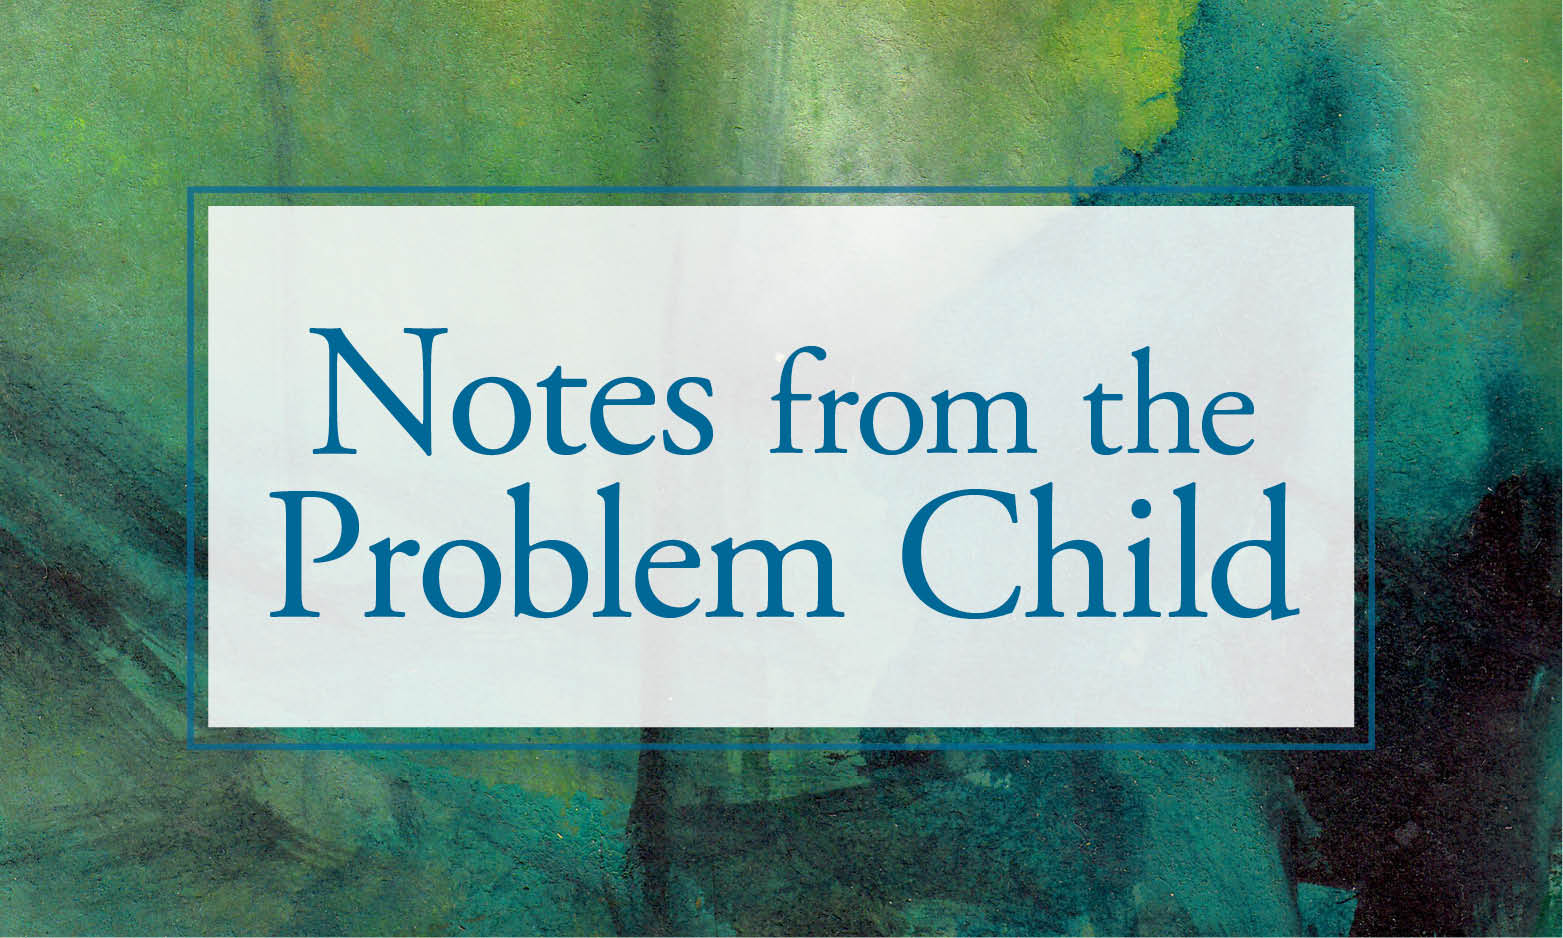 notes from the problem child